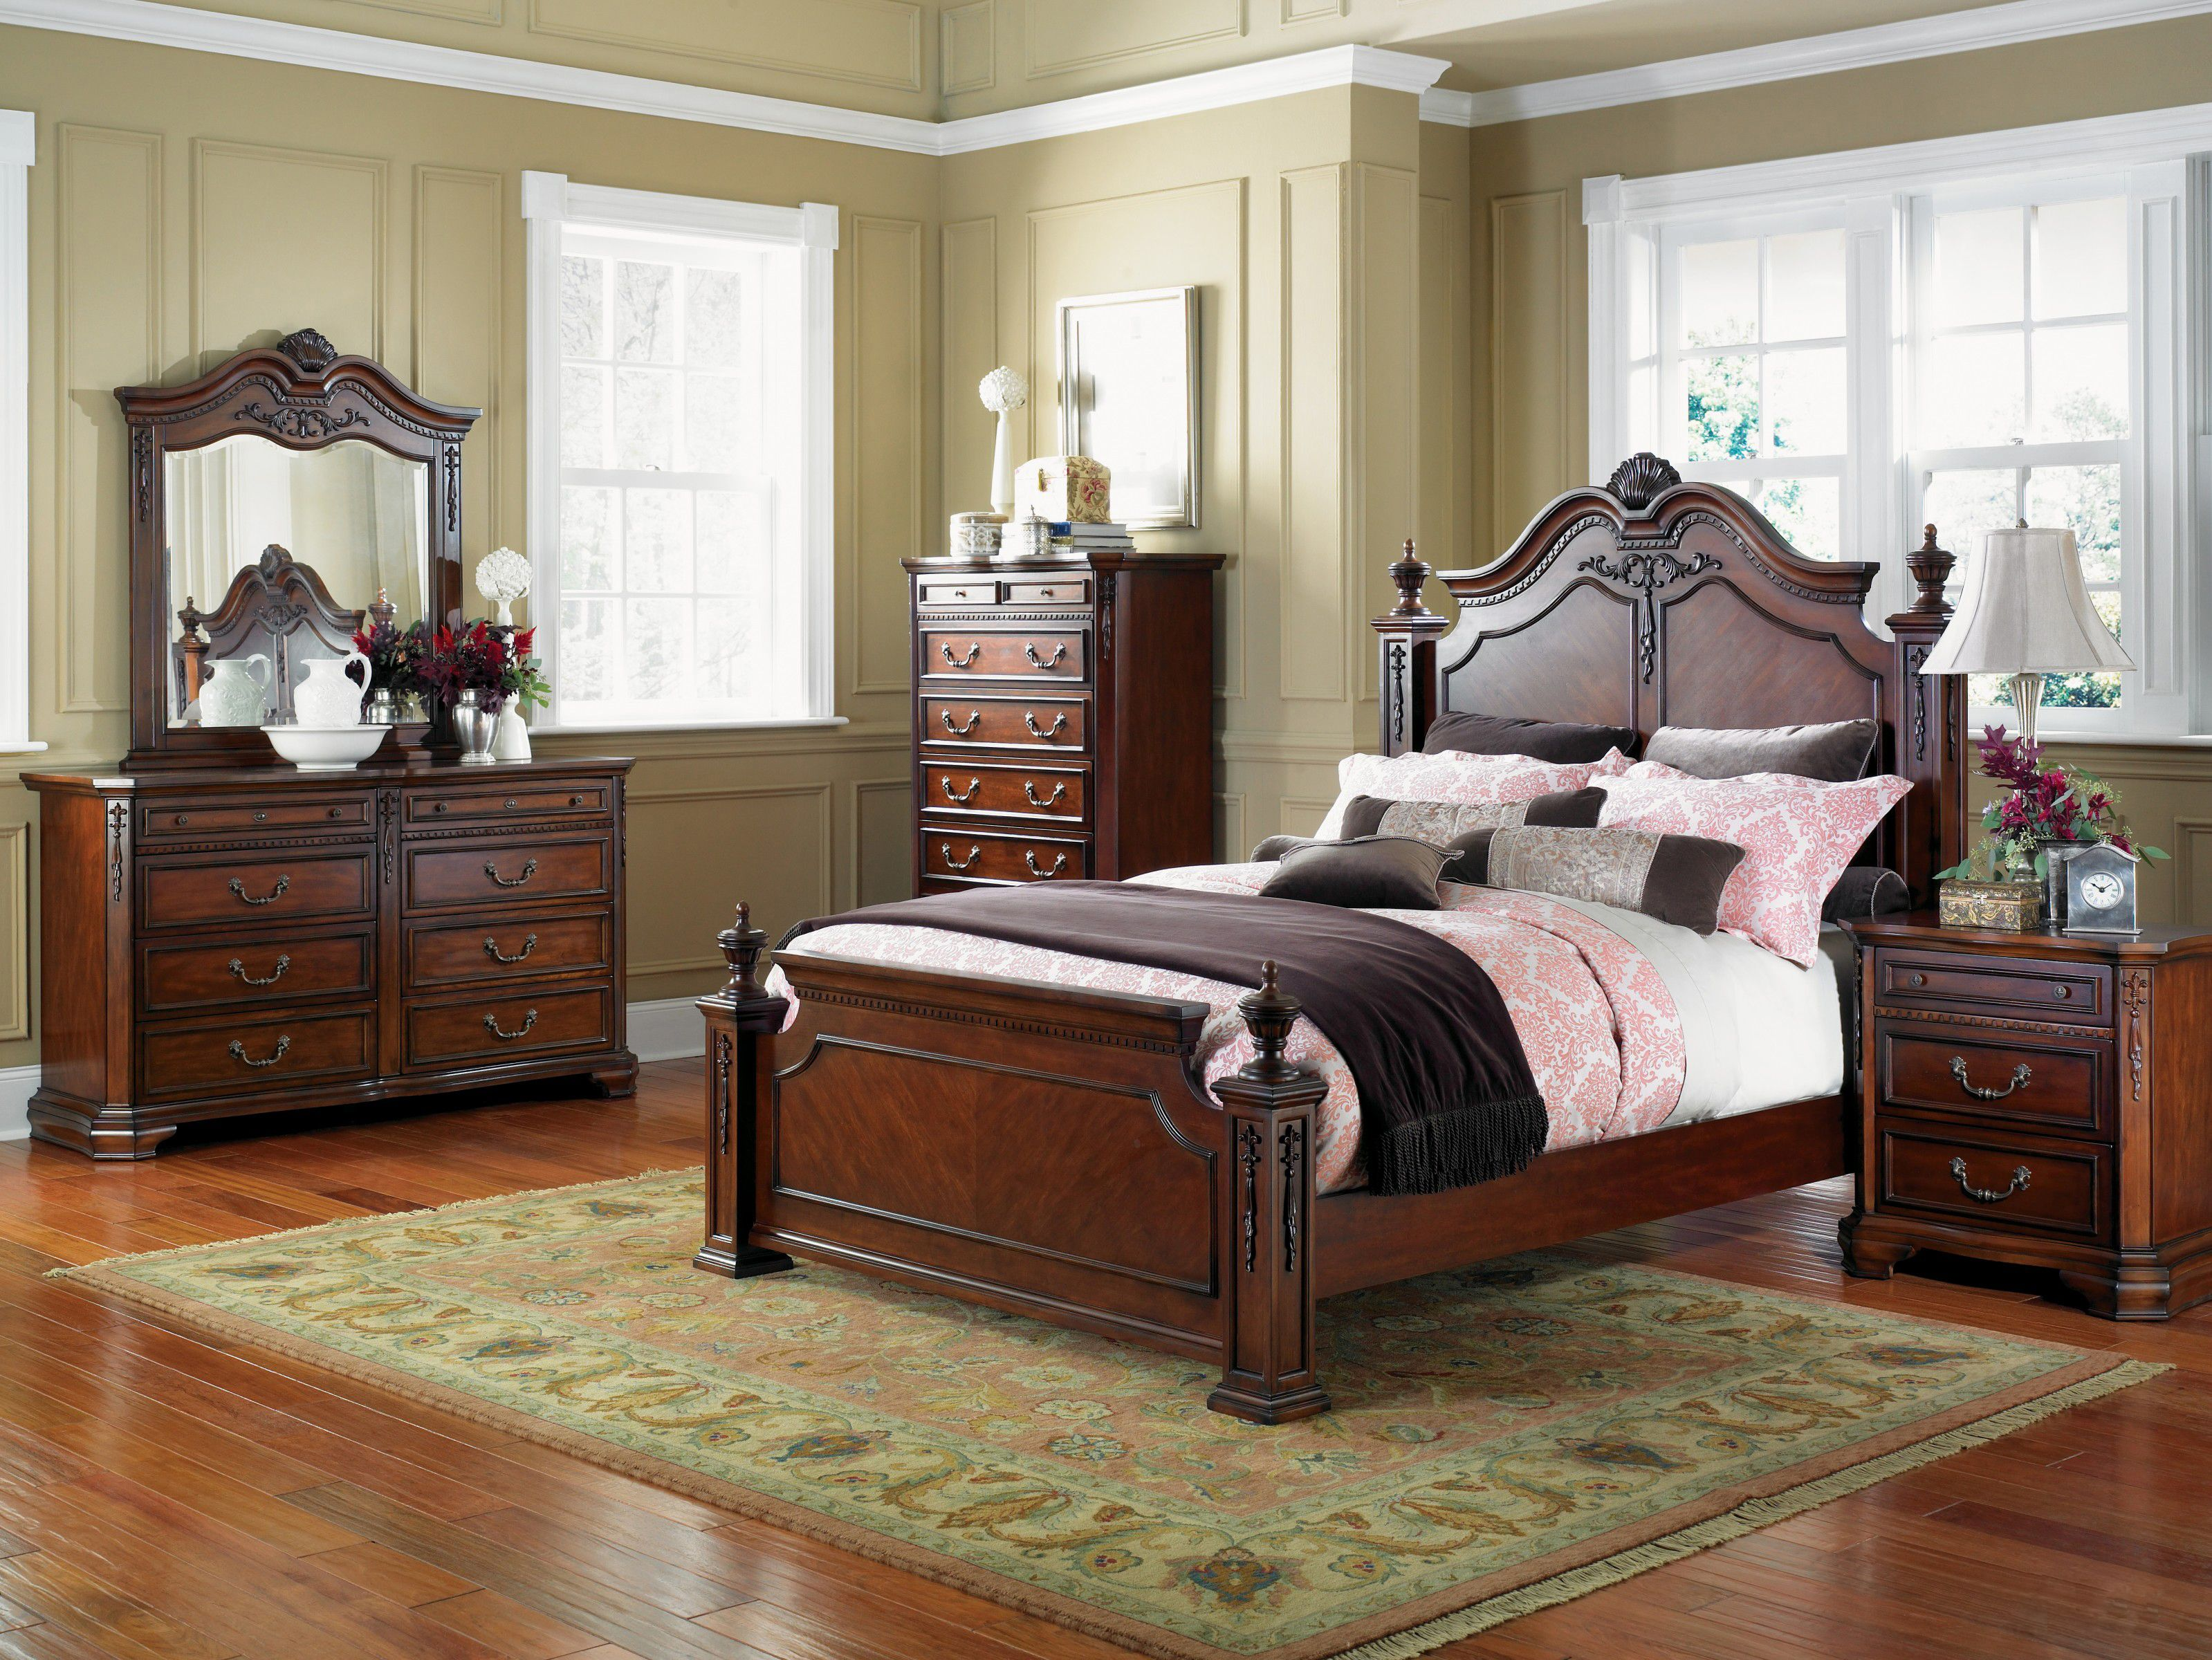 Master bedroom furniture sets  Excelsior Bedroom Furniture Set Collection  Request a FREE Quote